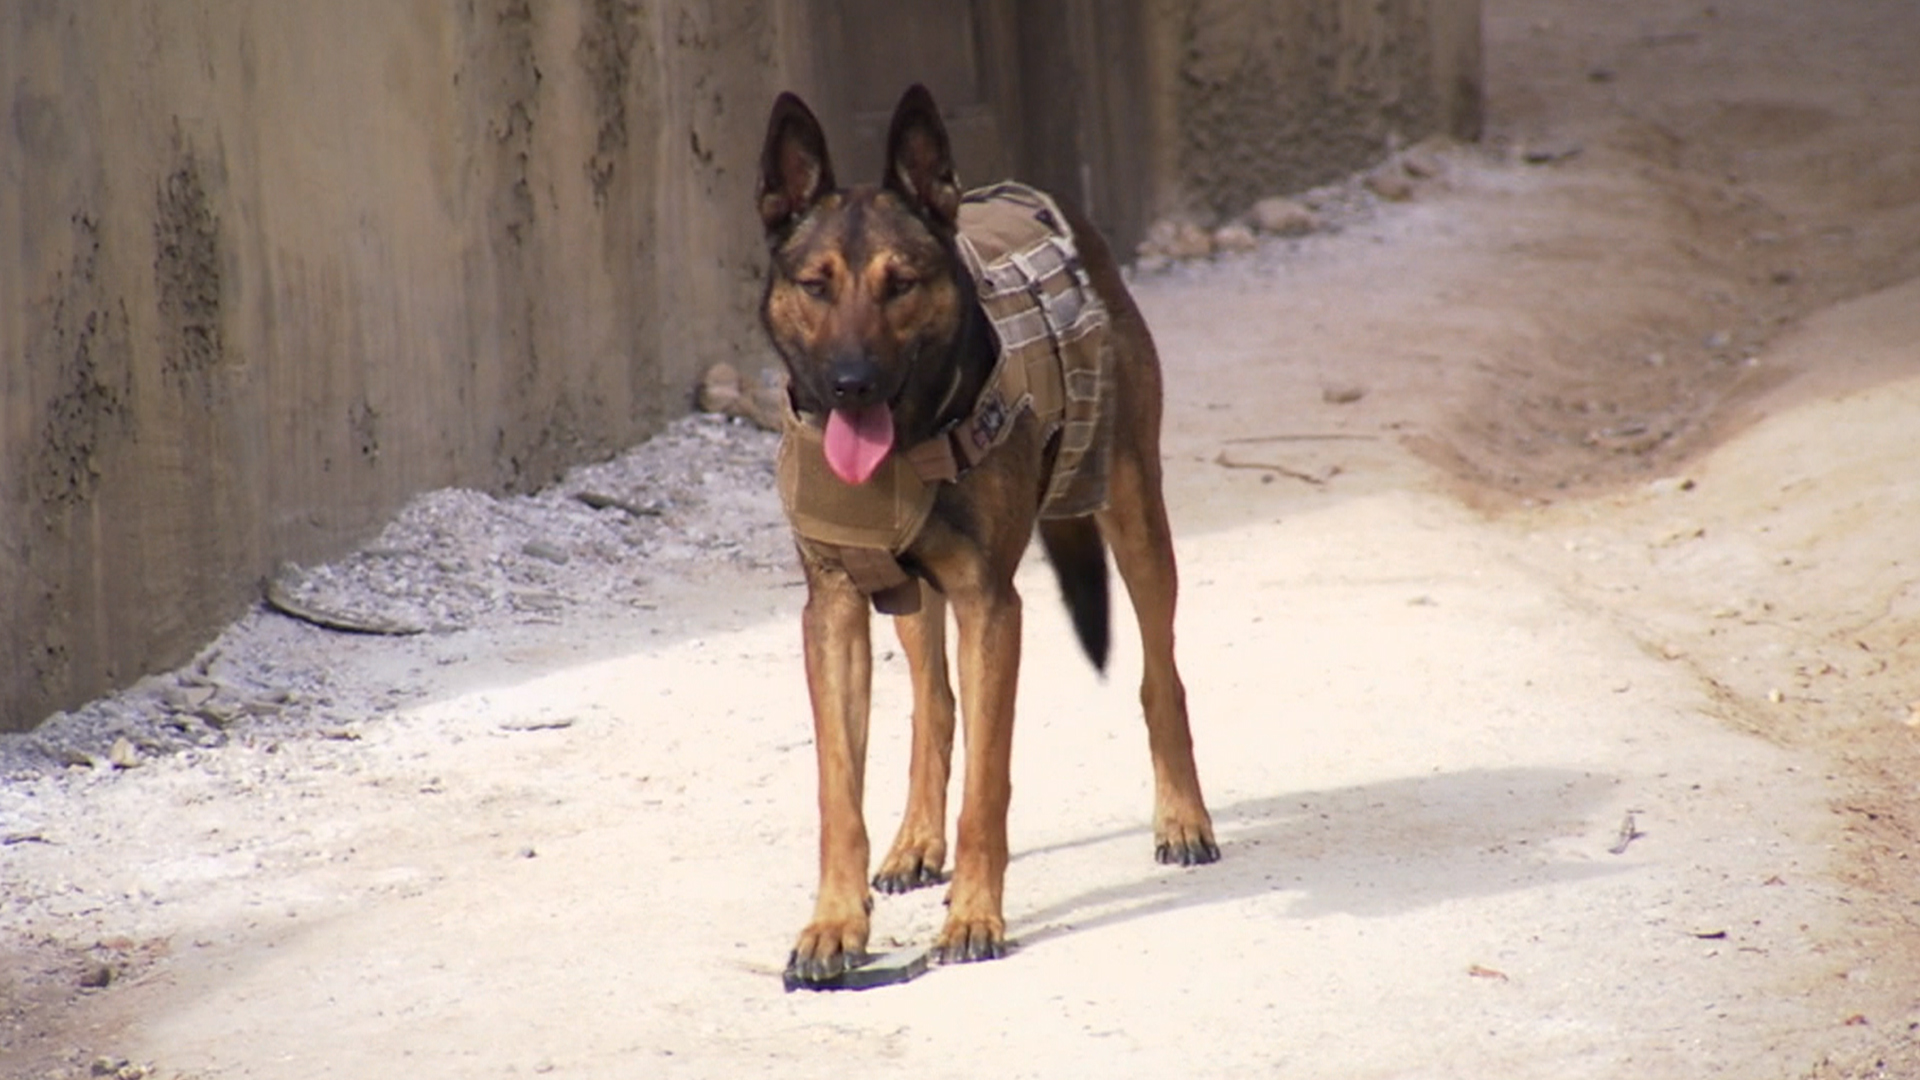 Meet the 4-legged star of new movie 'Max' - TODAY.com